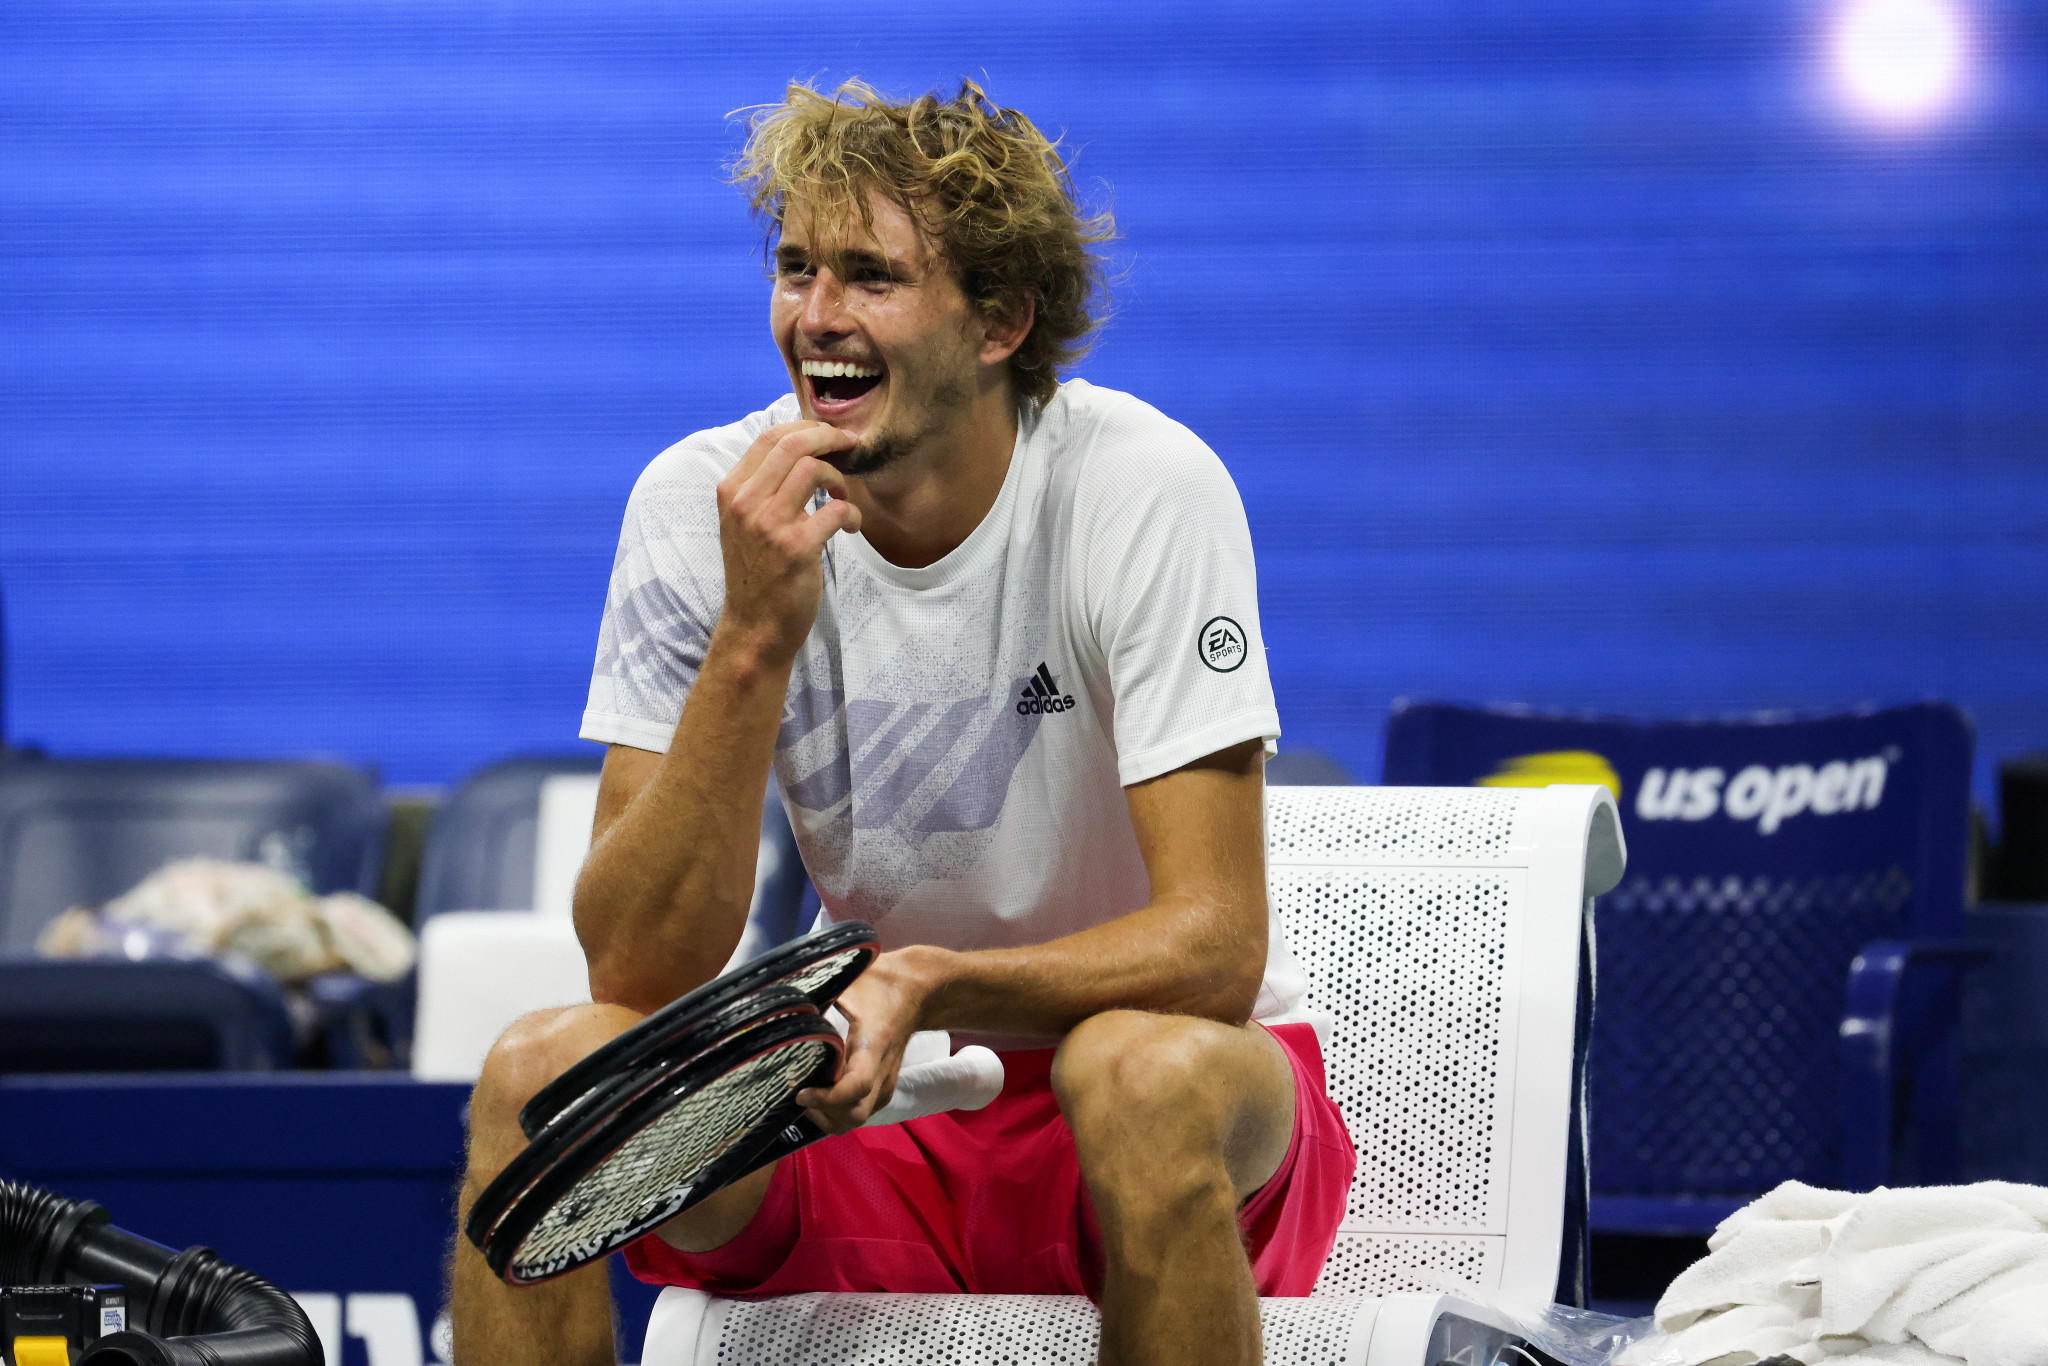 Alex Zverev looks on in amazement after overturning a two set deficit to beat Pablo Carreno Busta and reach the men's singles final ©Getty Images